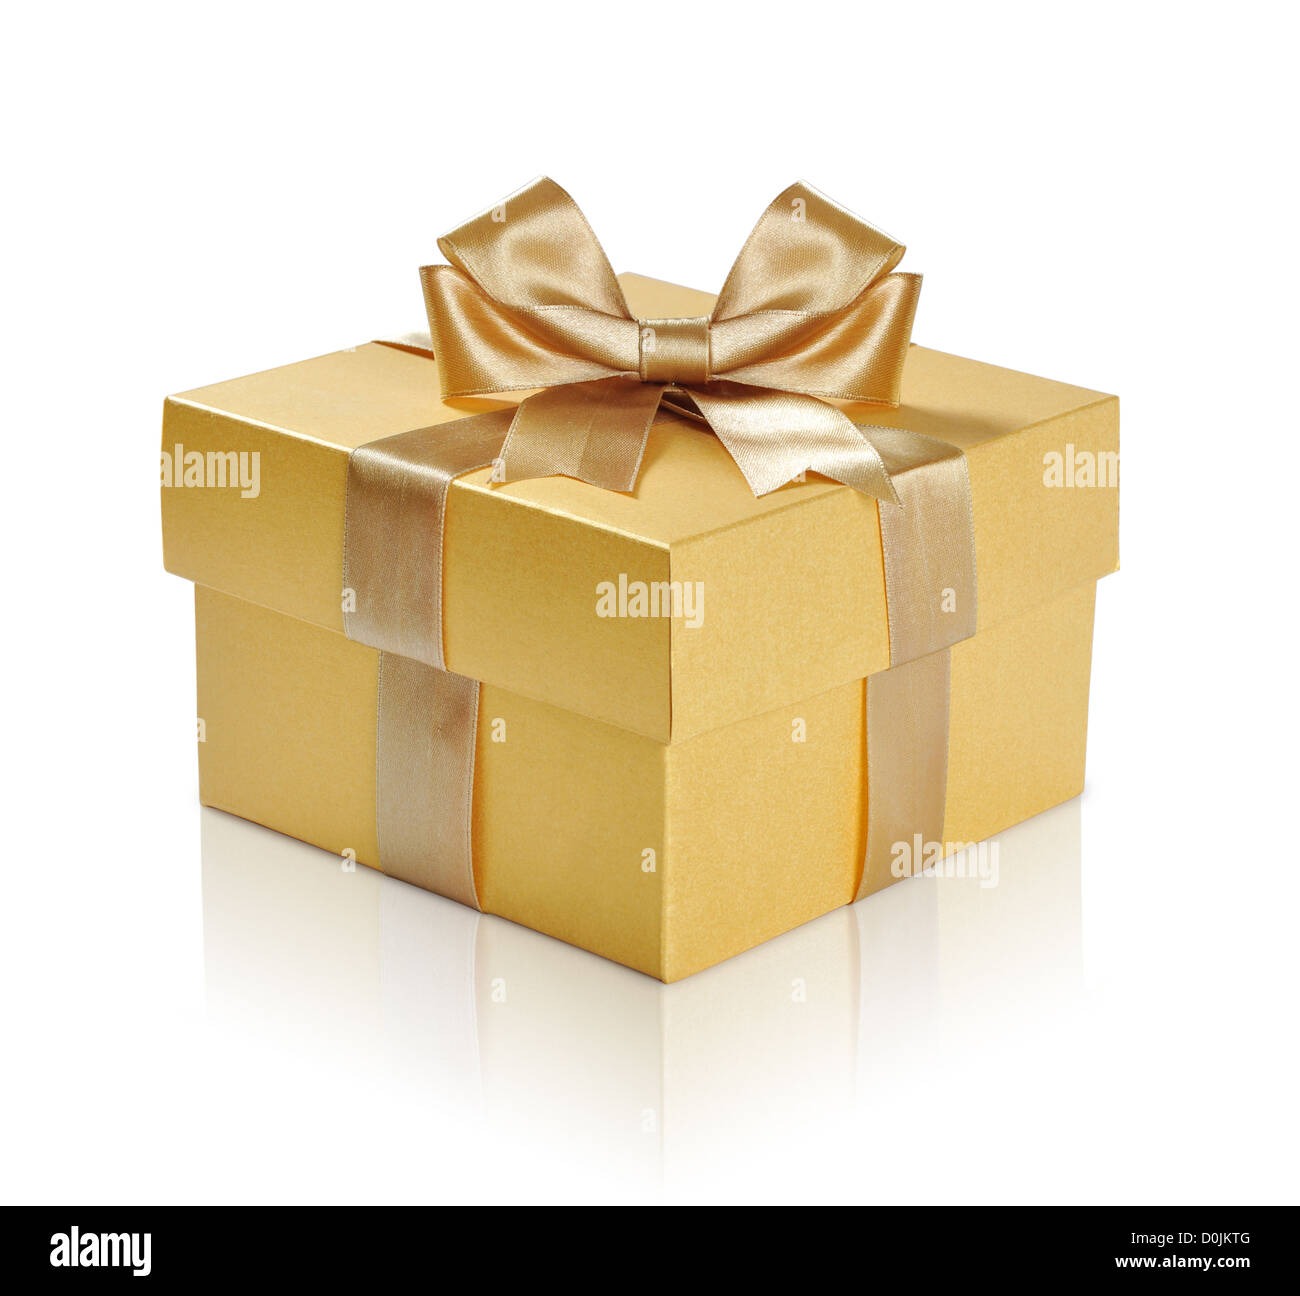 Golden gift box with golden ribbon over white background. Clipping path included. - Stock Image